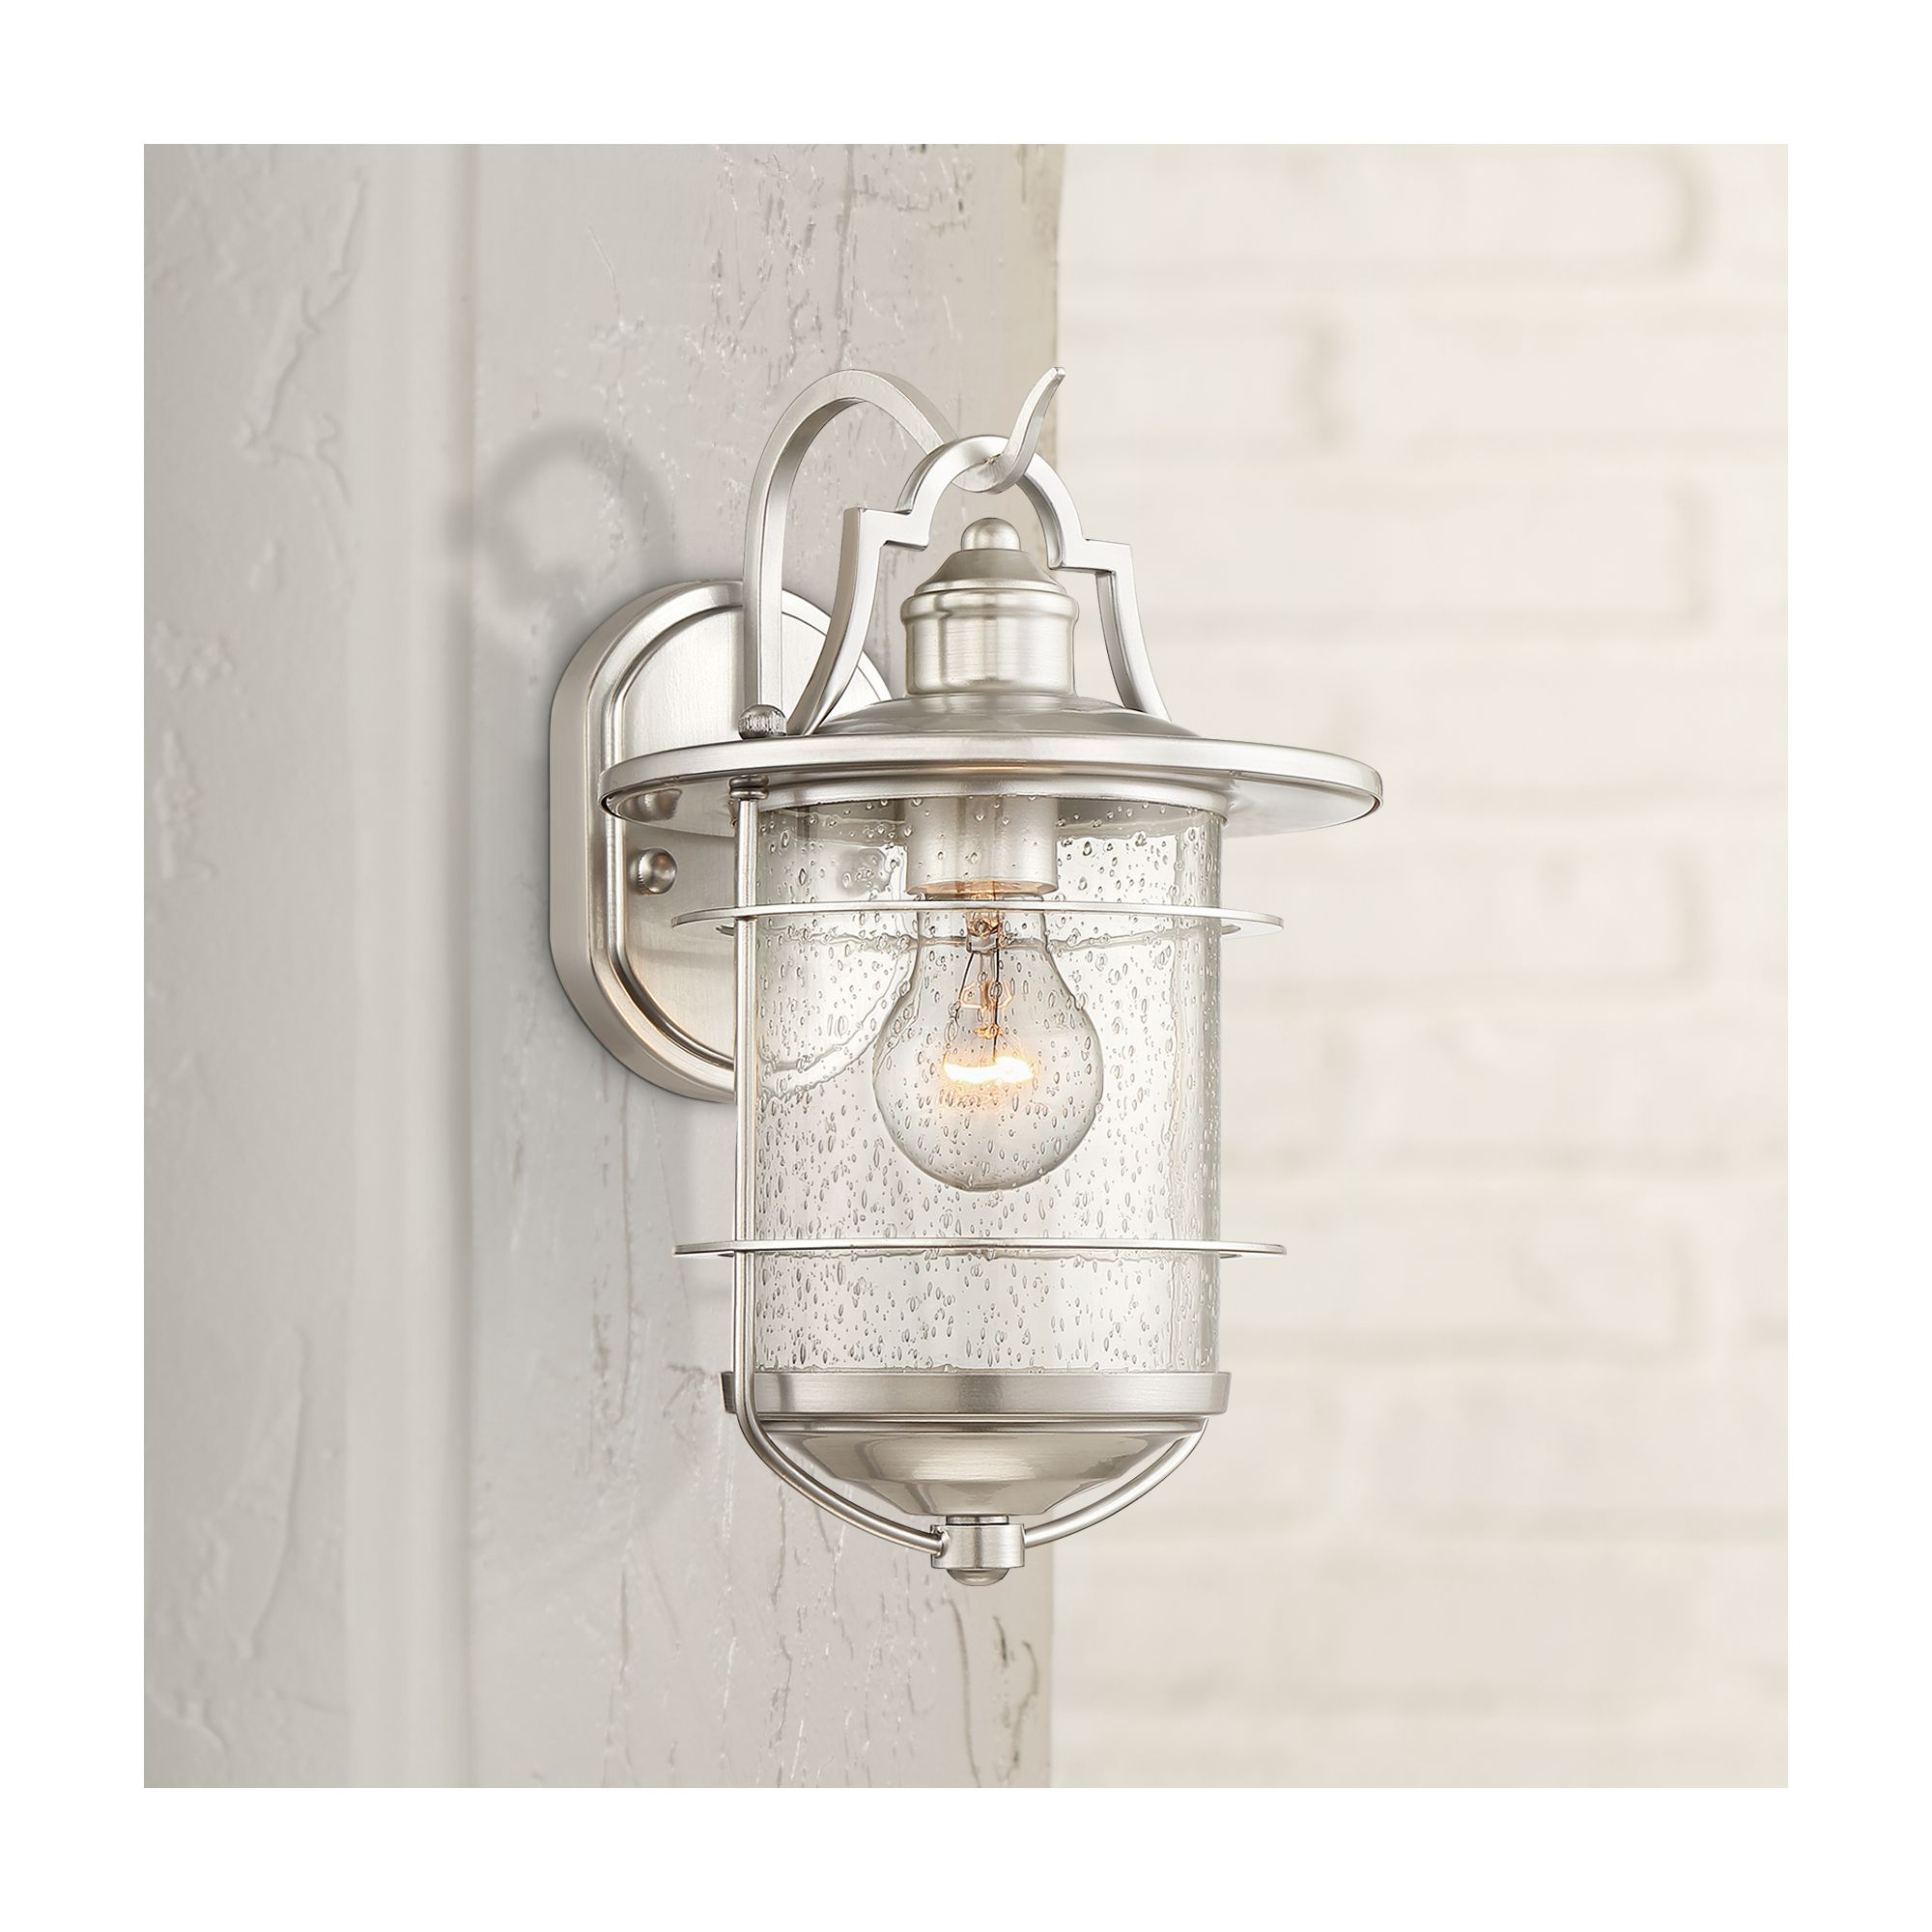 "Franklin Iron Works Casa Mirada 12"" High Brushed Nickel Outdoor Wall Light"